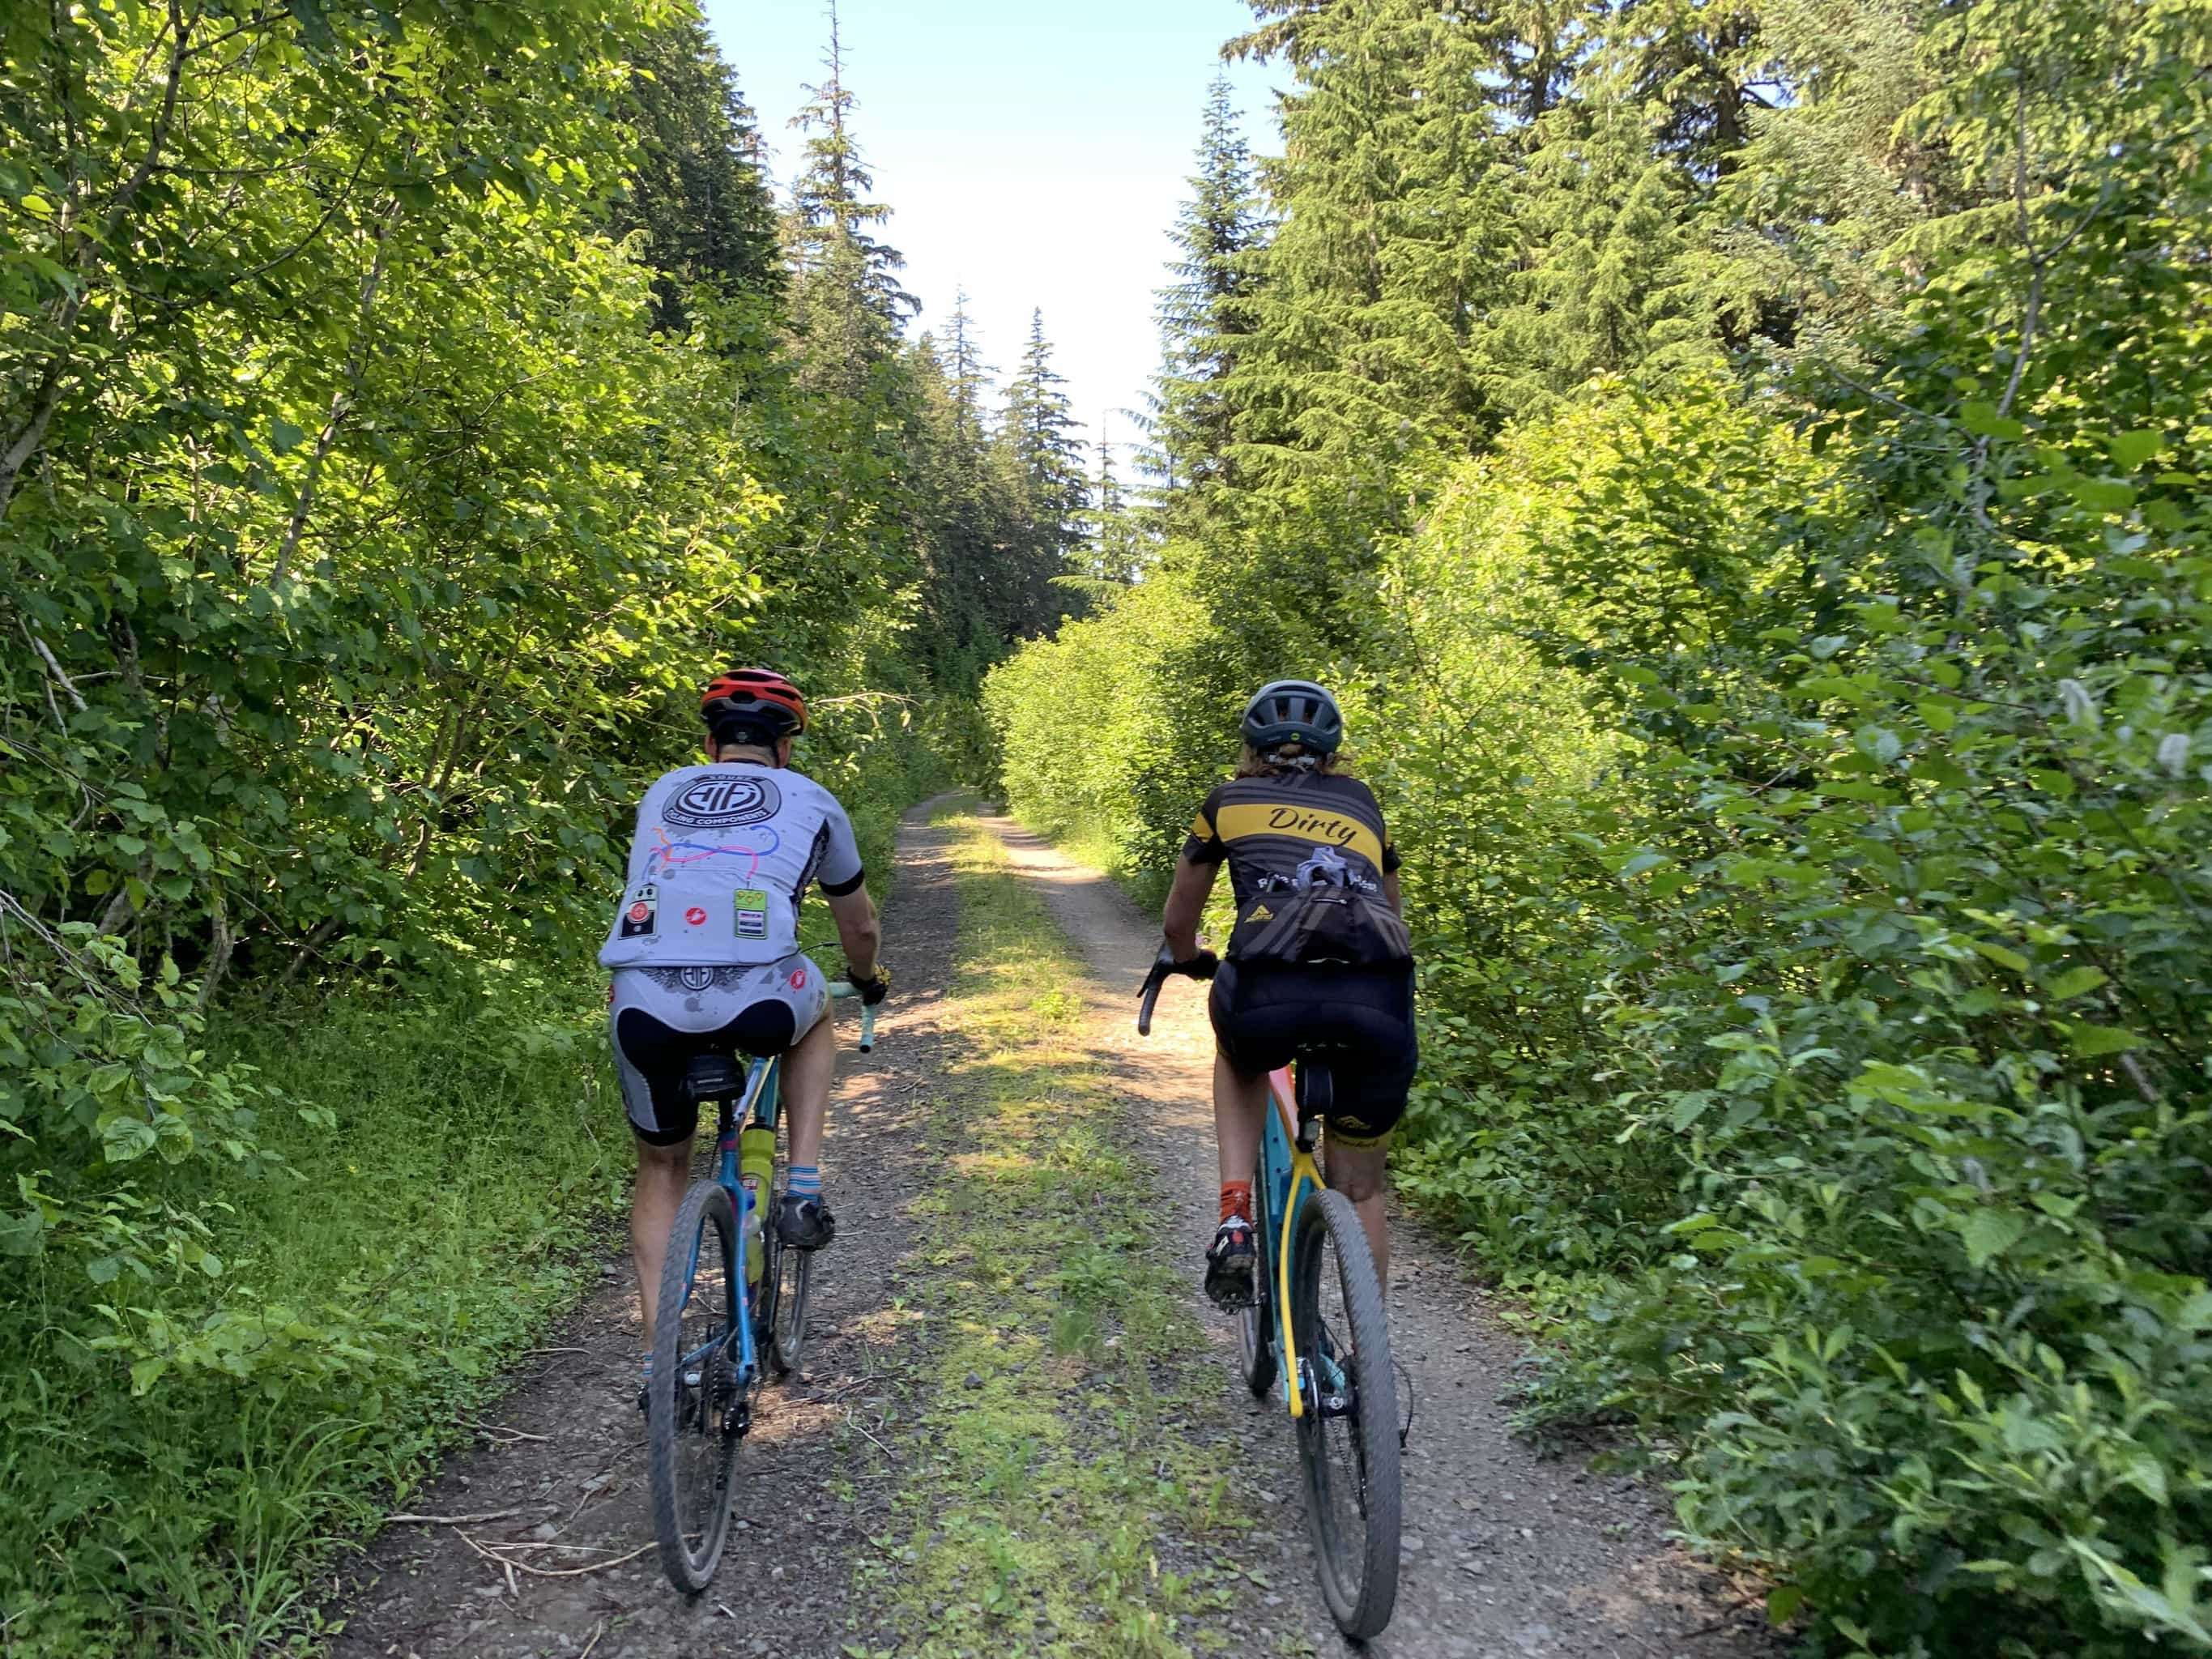 Gravel cyclist on near Bare Mountain and Observation Peak in Gifford Pinchot National forest.